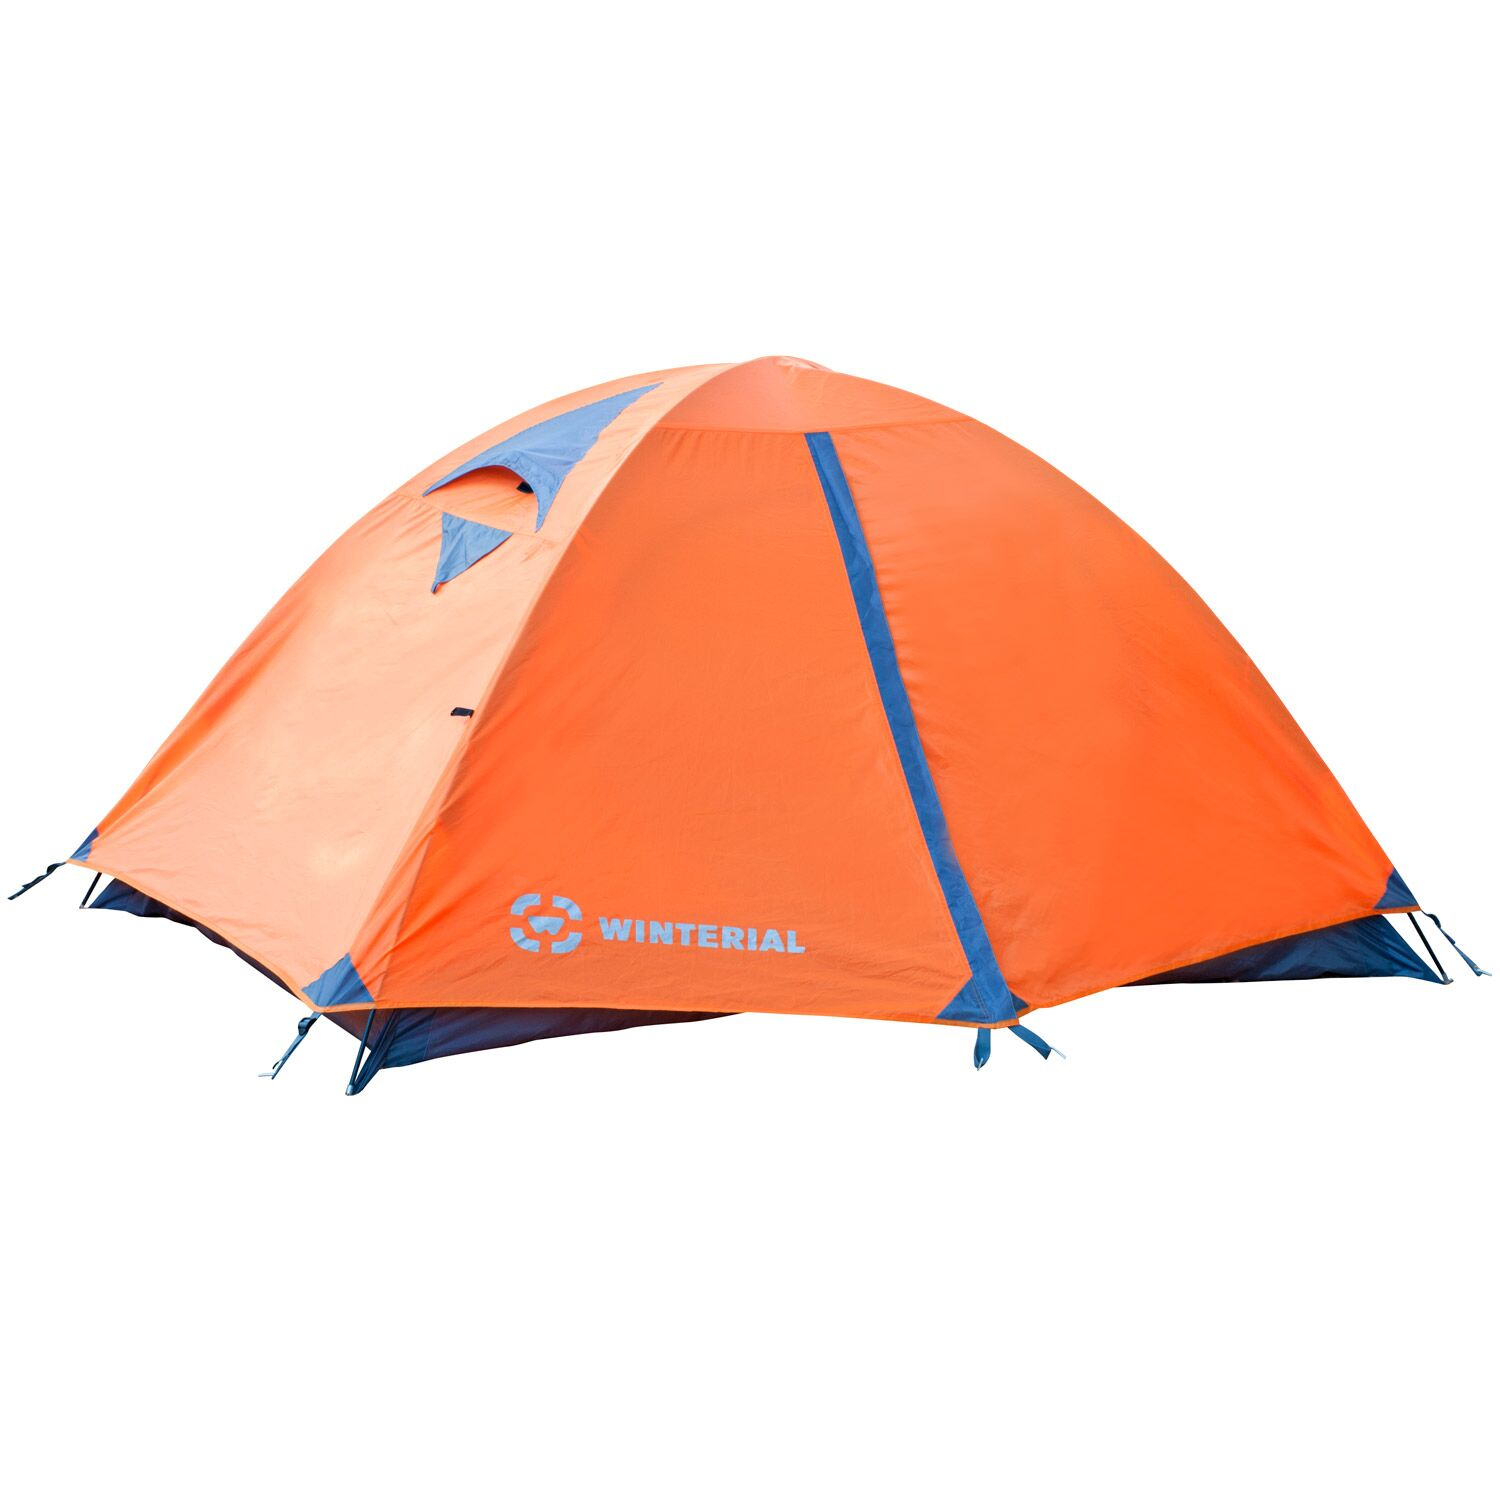 Winterial Two Person Tent